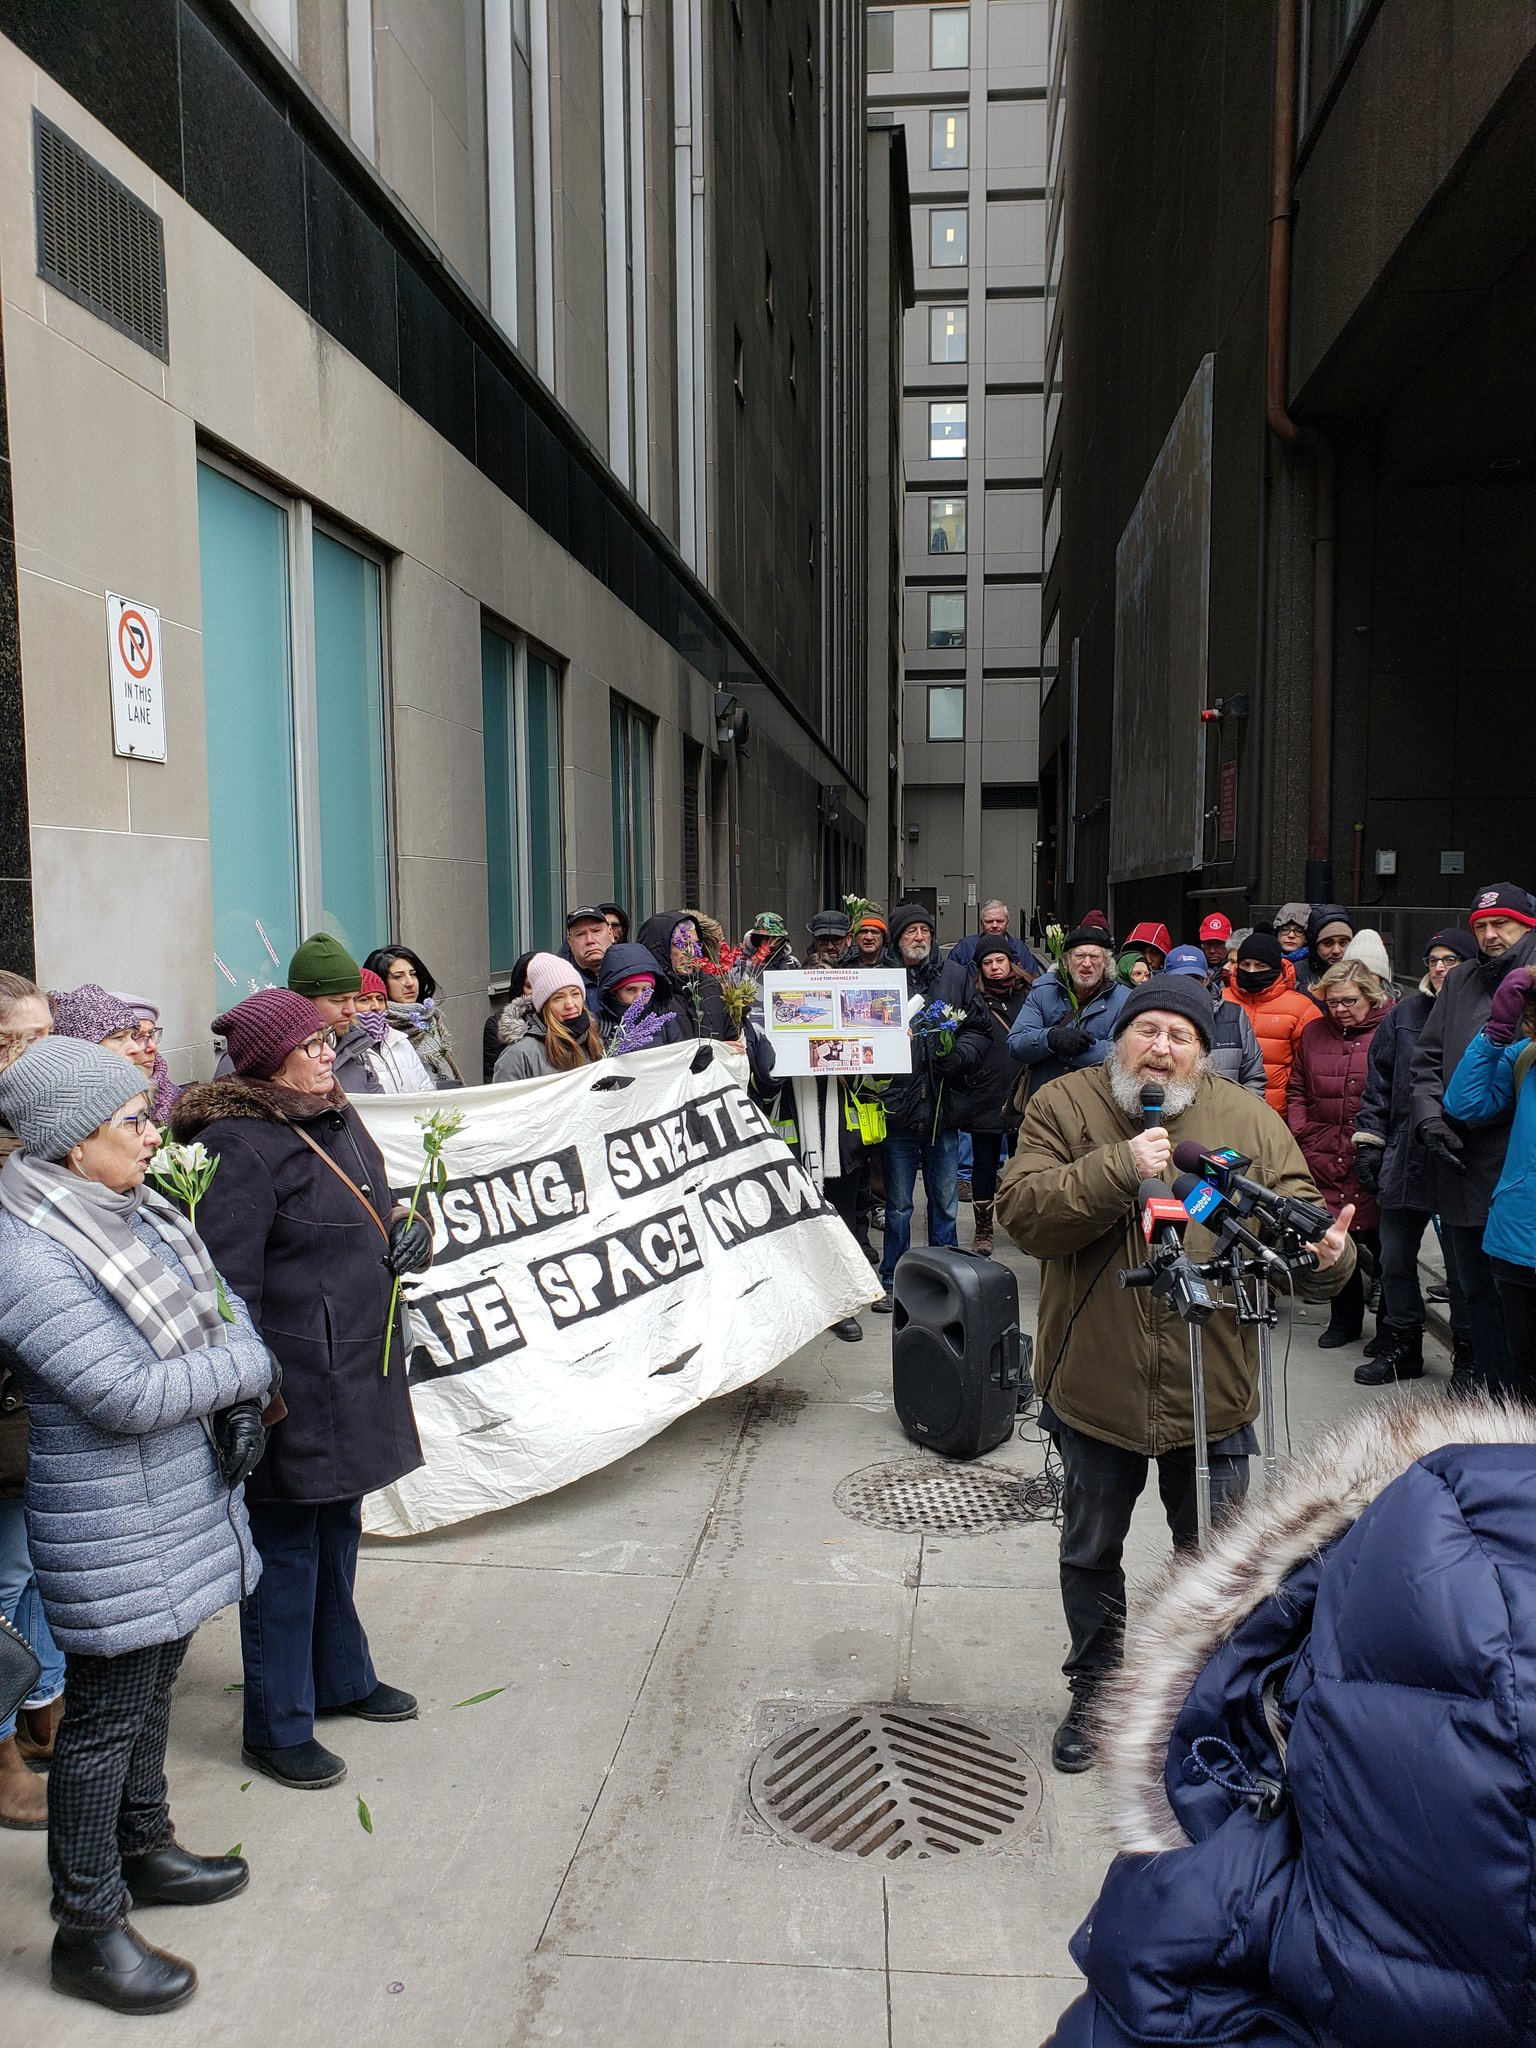 "Outdoor rally in an alley with a man speaking into a microphone and a large sign with text ""Housing Shelter Safe Space Now""."